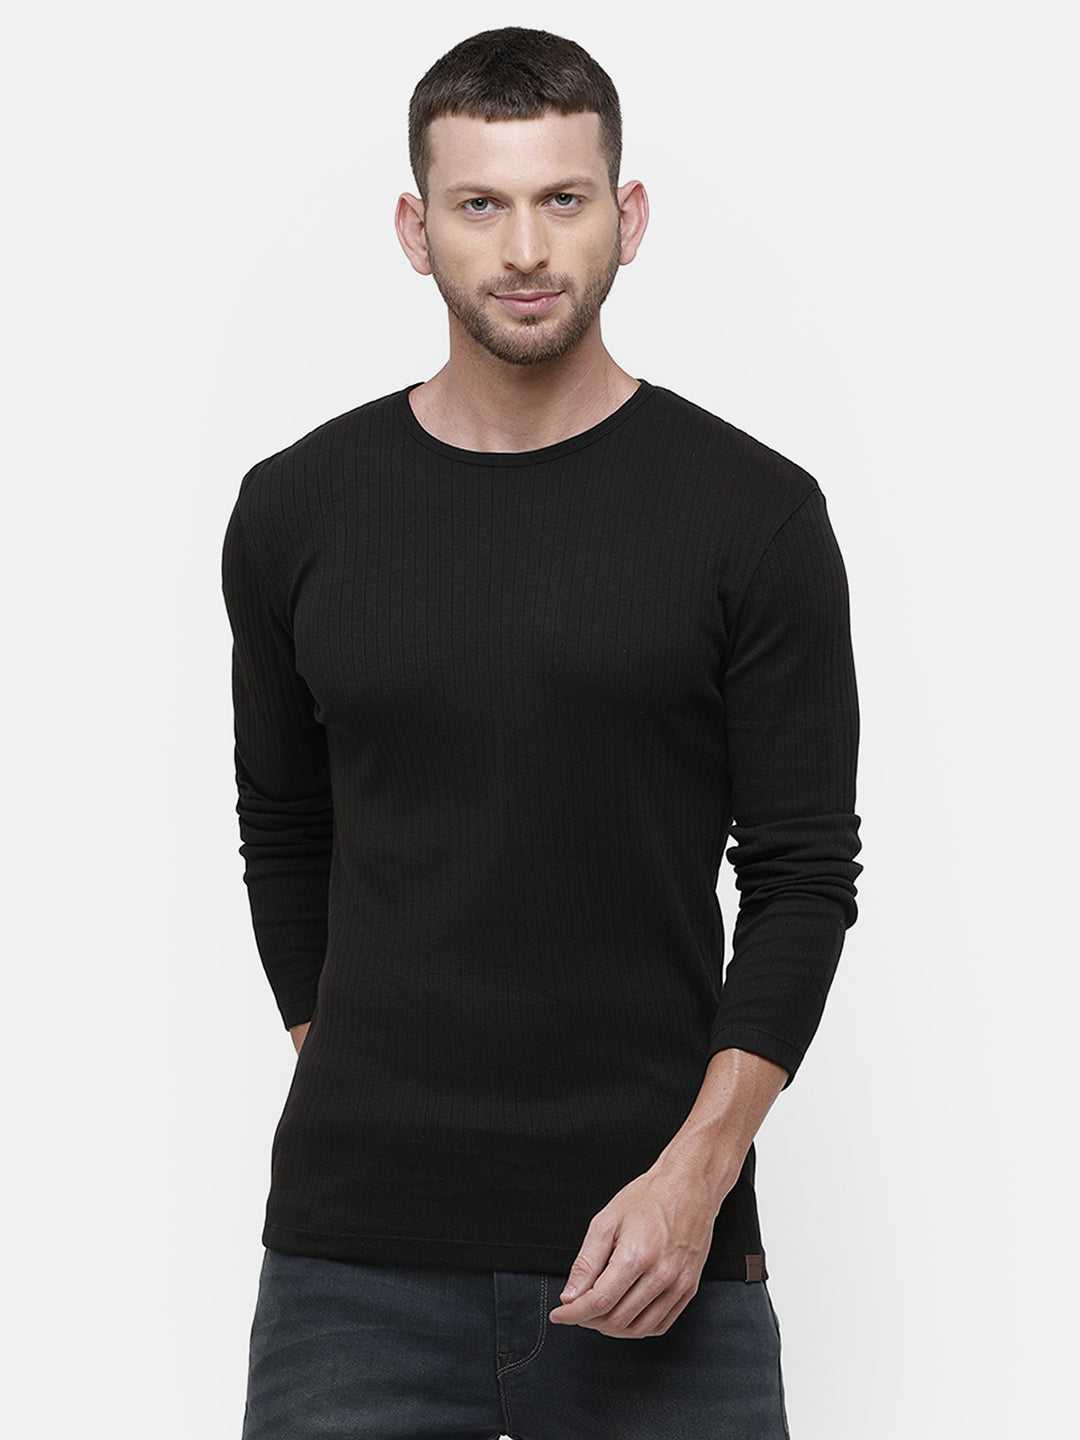 Men's Knitted round neck full sleeve Black T-shirt